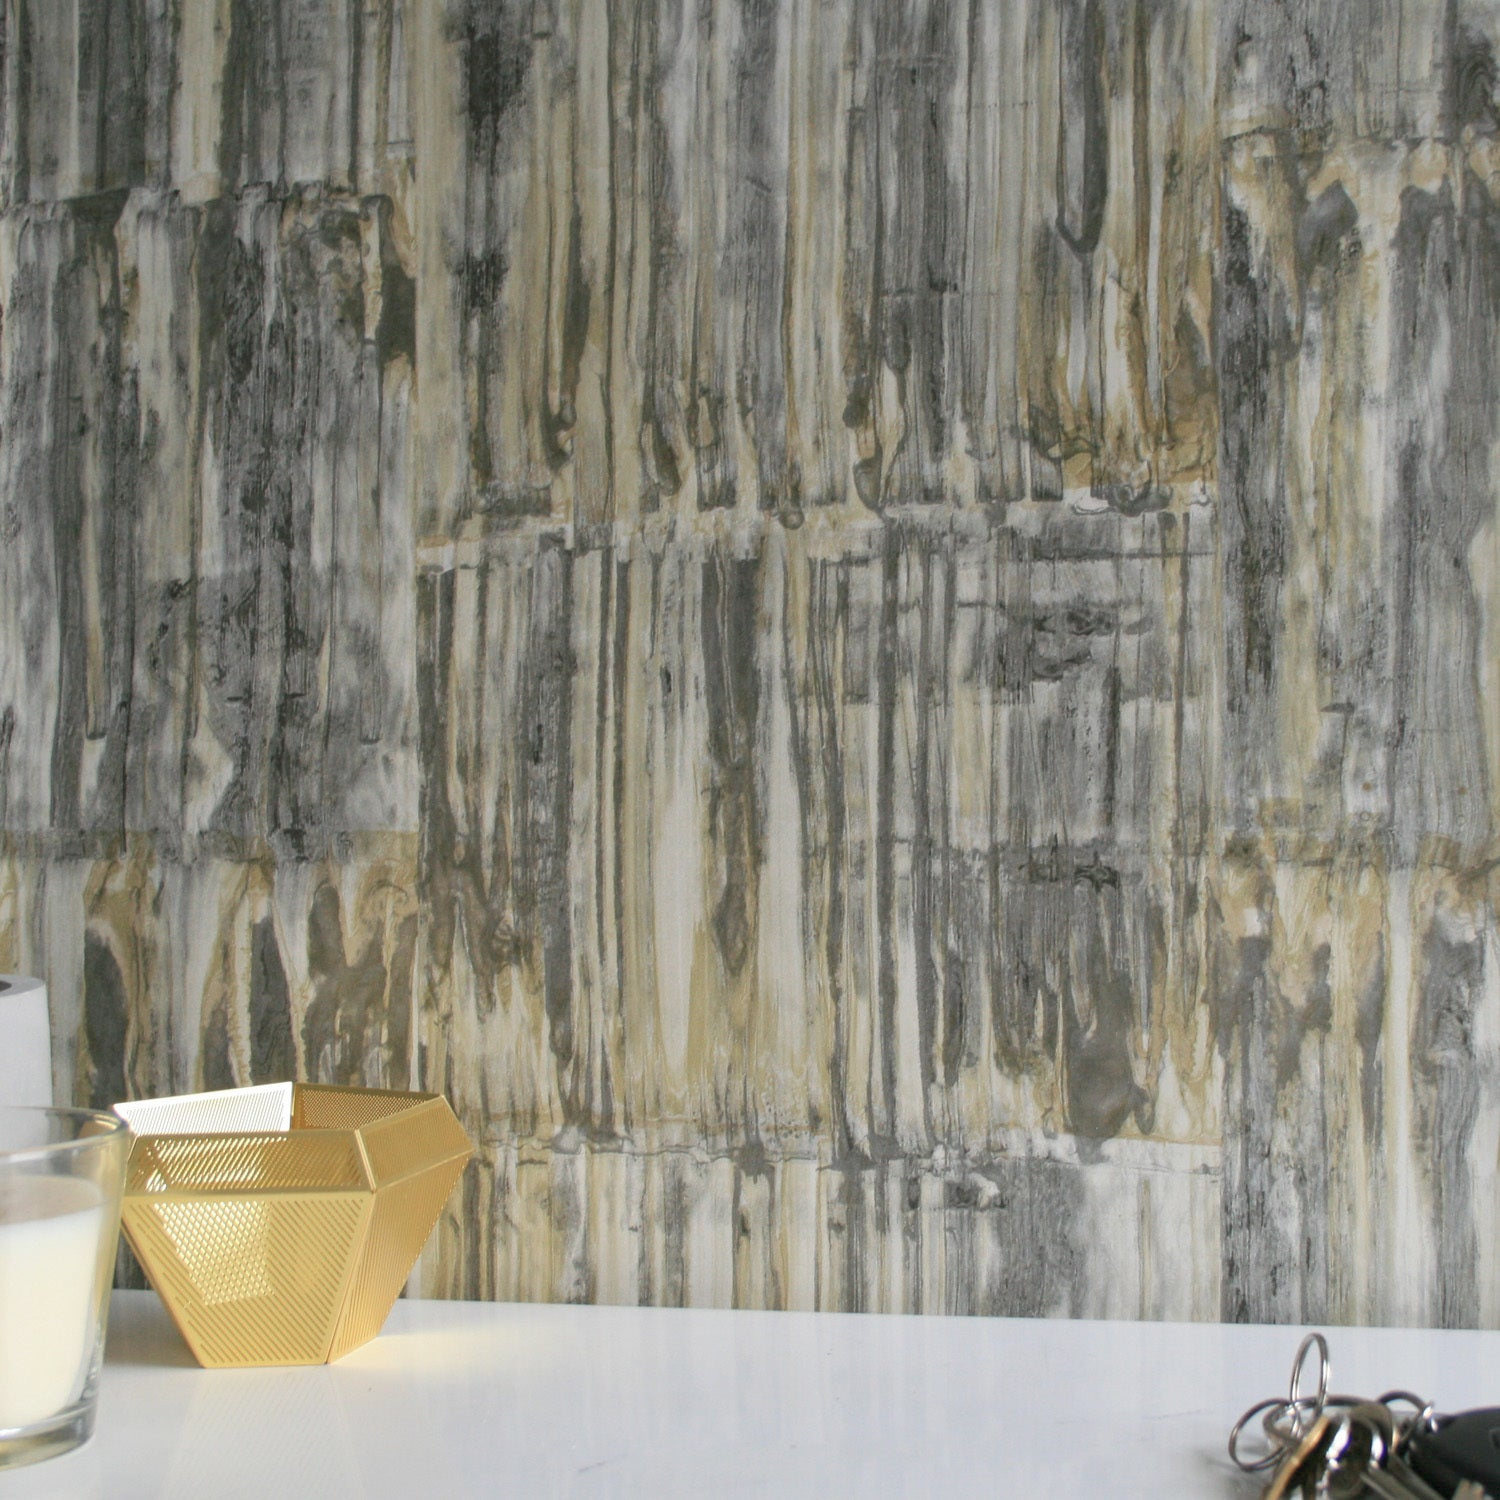 Rusted Metallic Corrugated Panel Effect Wallpaper | Yellow and Metallic Silver Grey & Charcoal